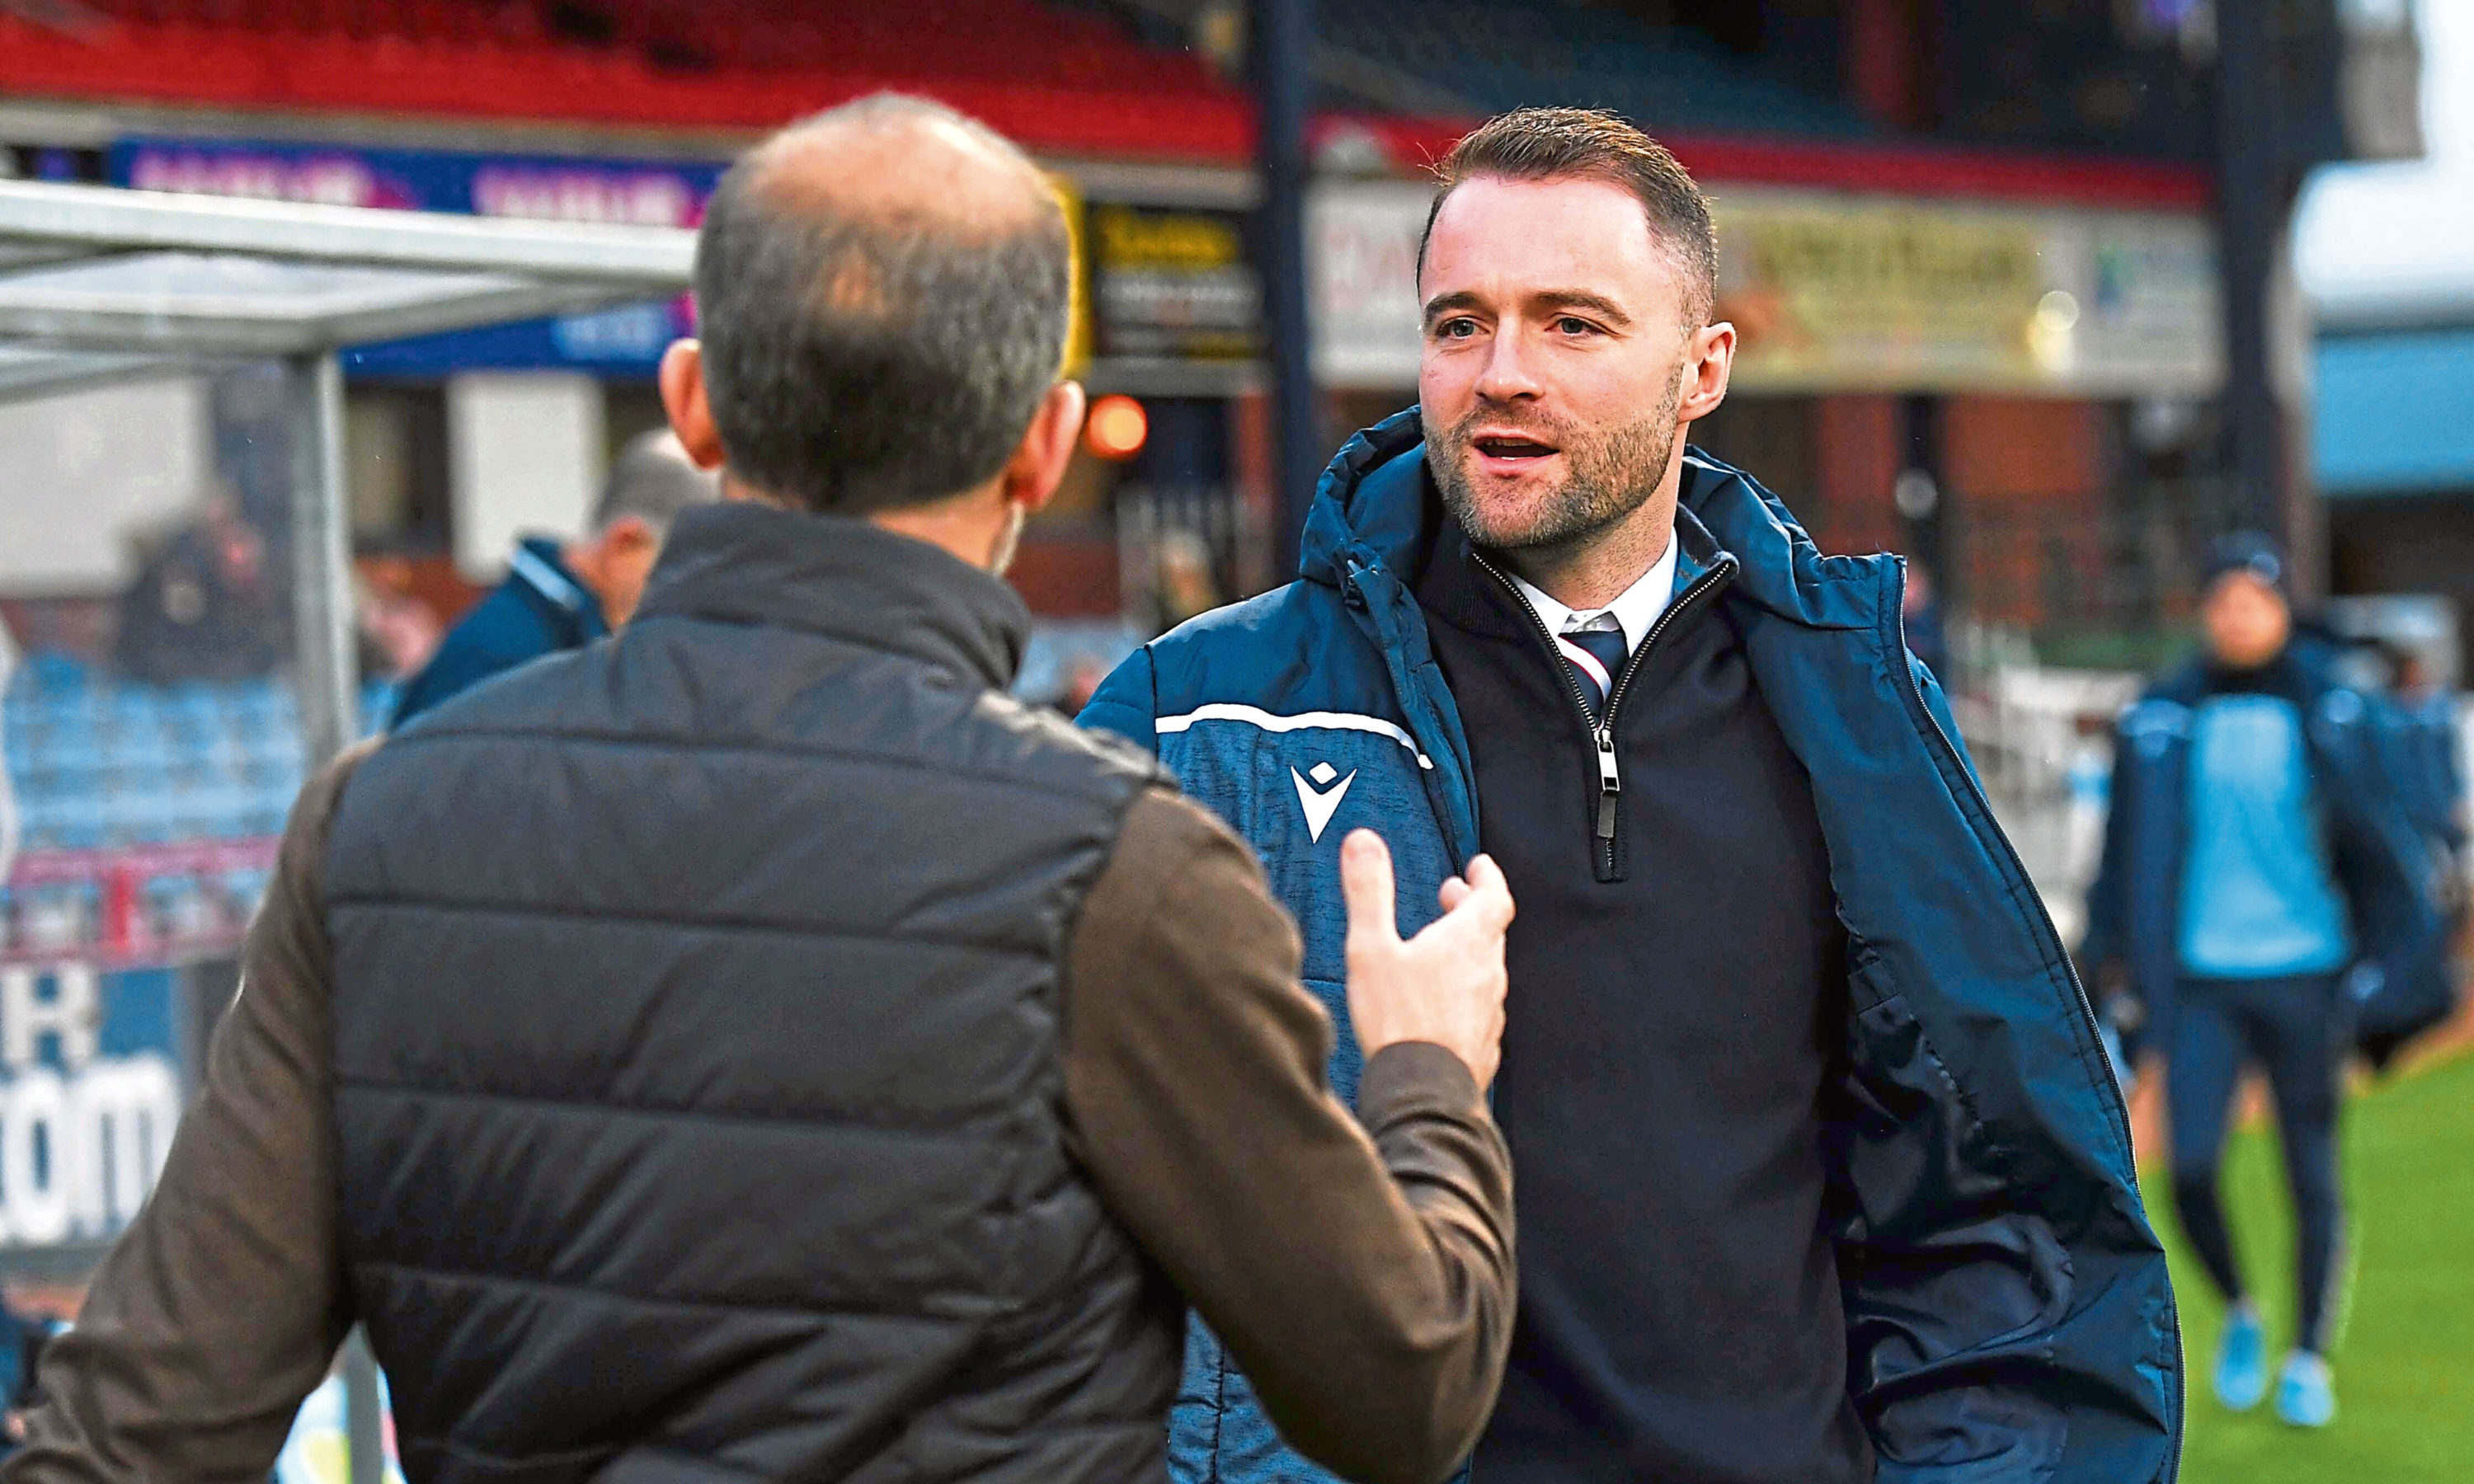 Dundee Manager James McPake shake hands with Dunfermline boss Stevie Crawford.